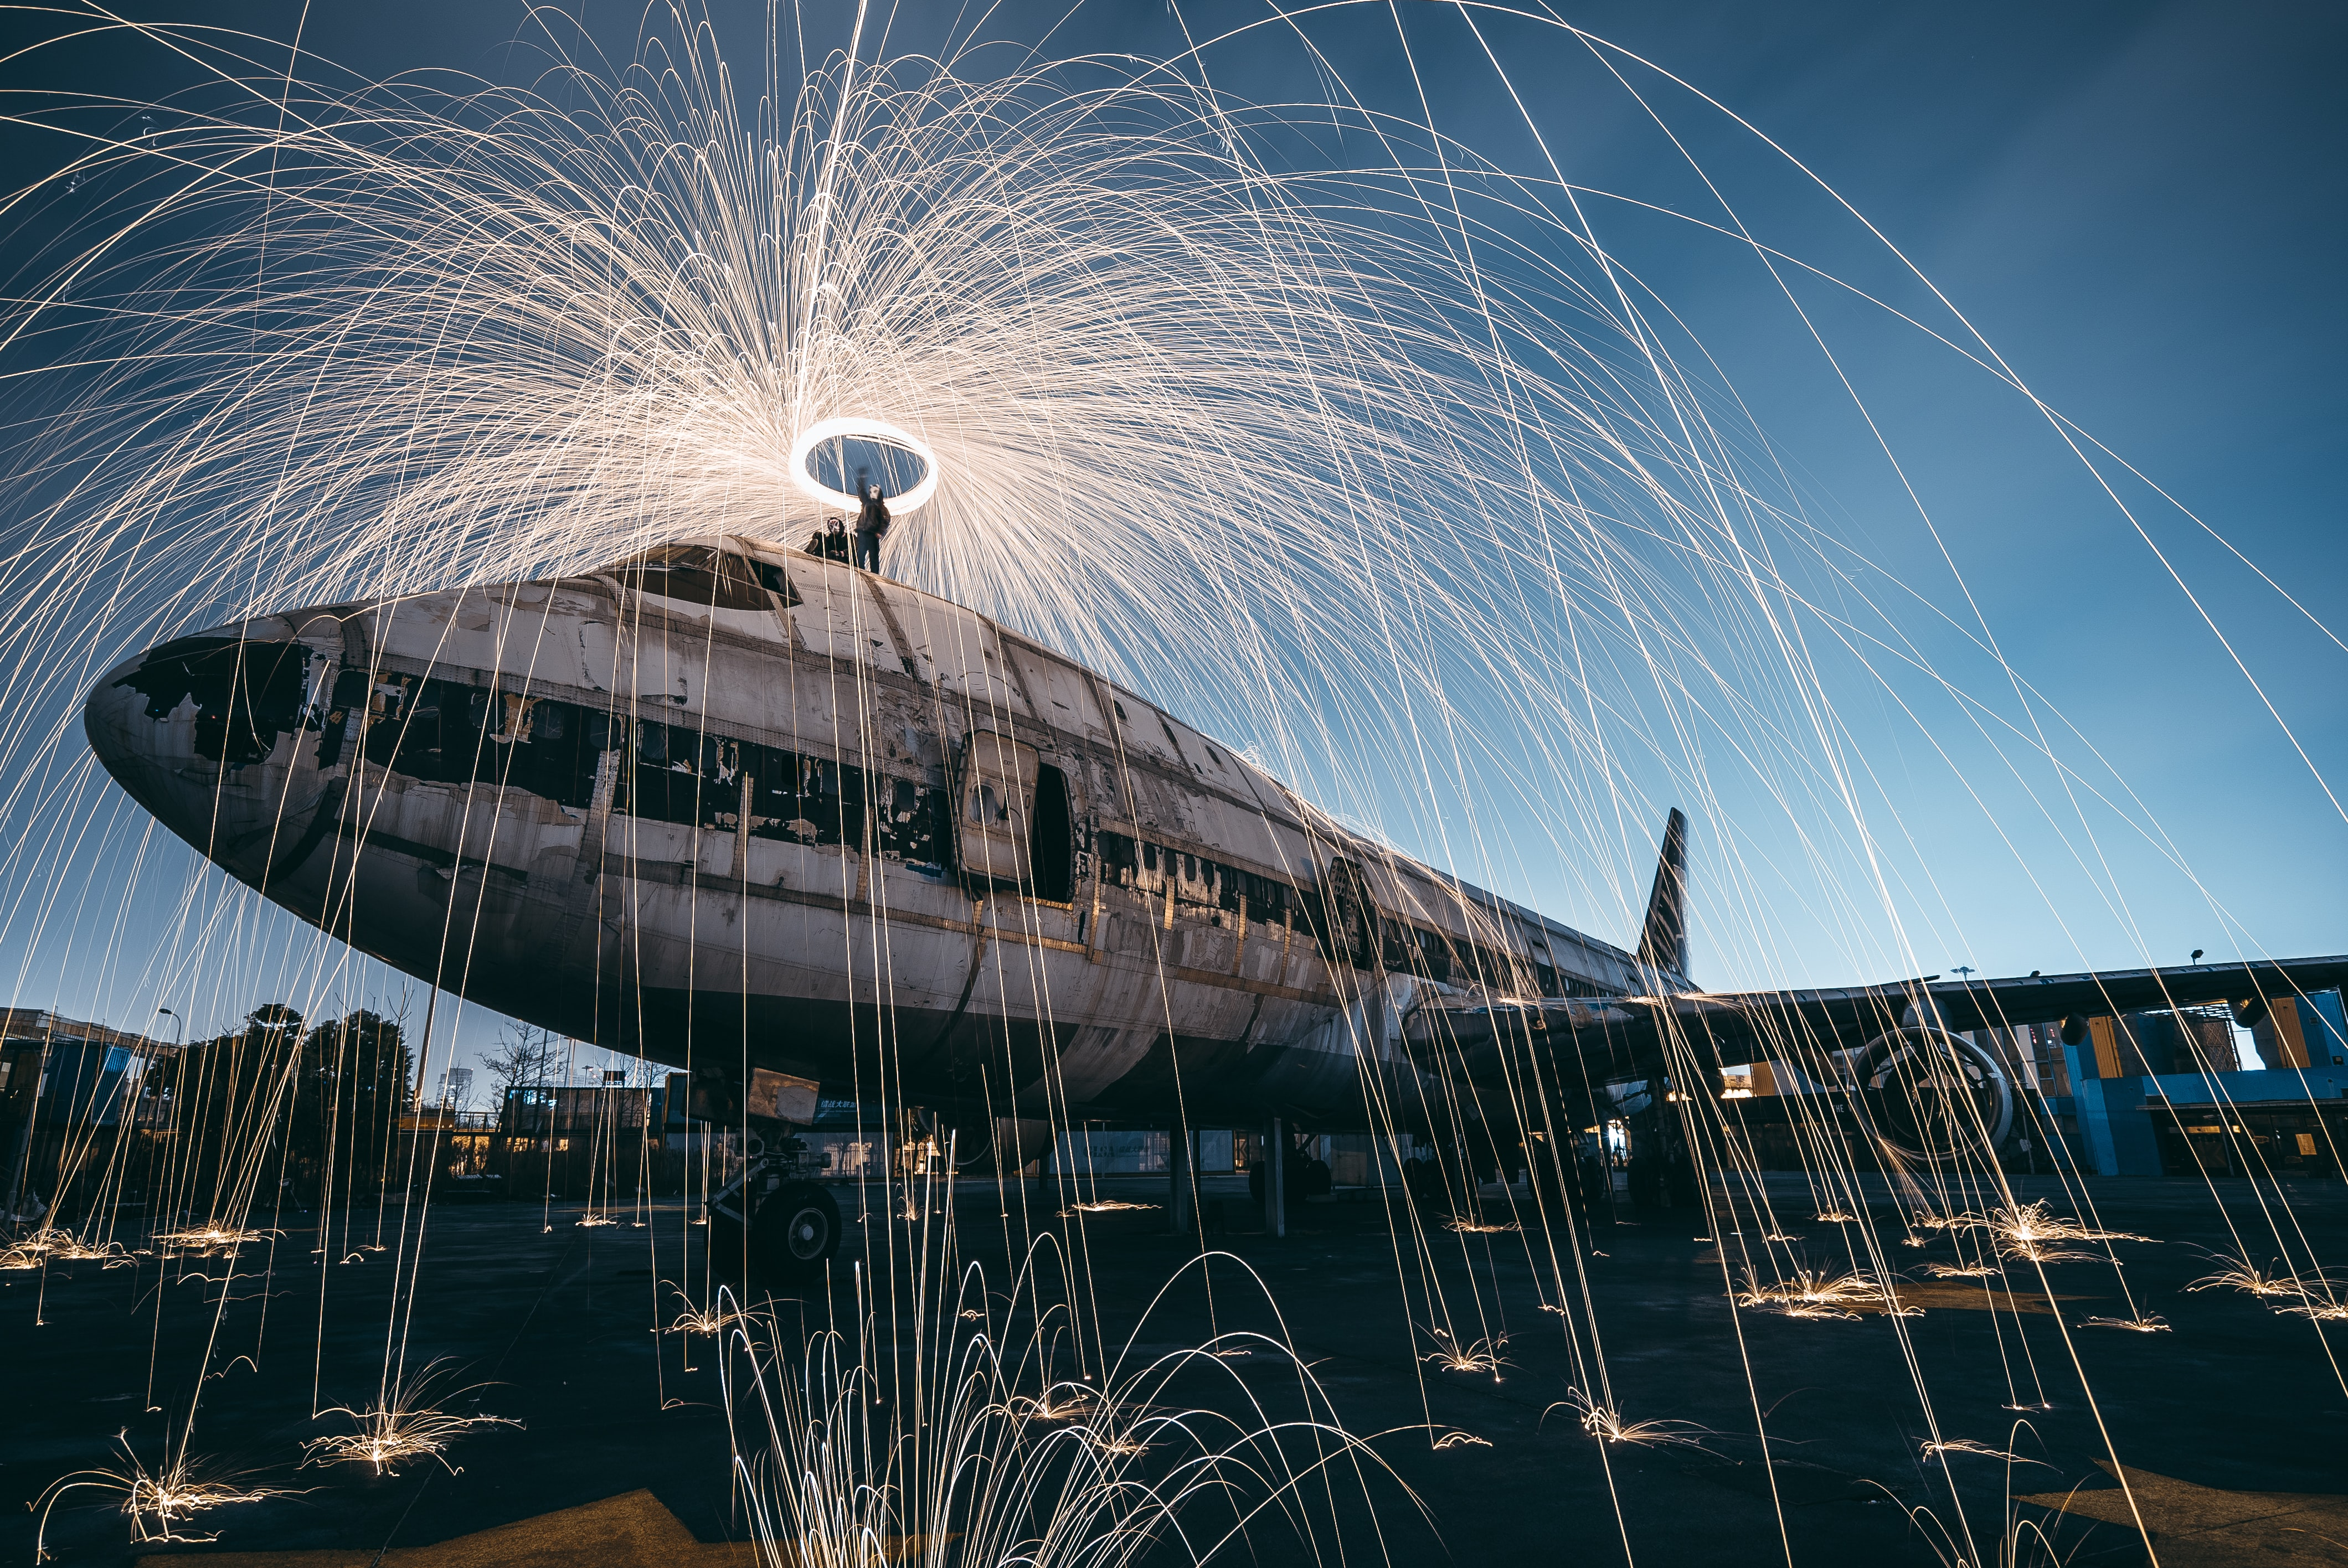 time lapse photo of steel wool and plane